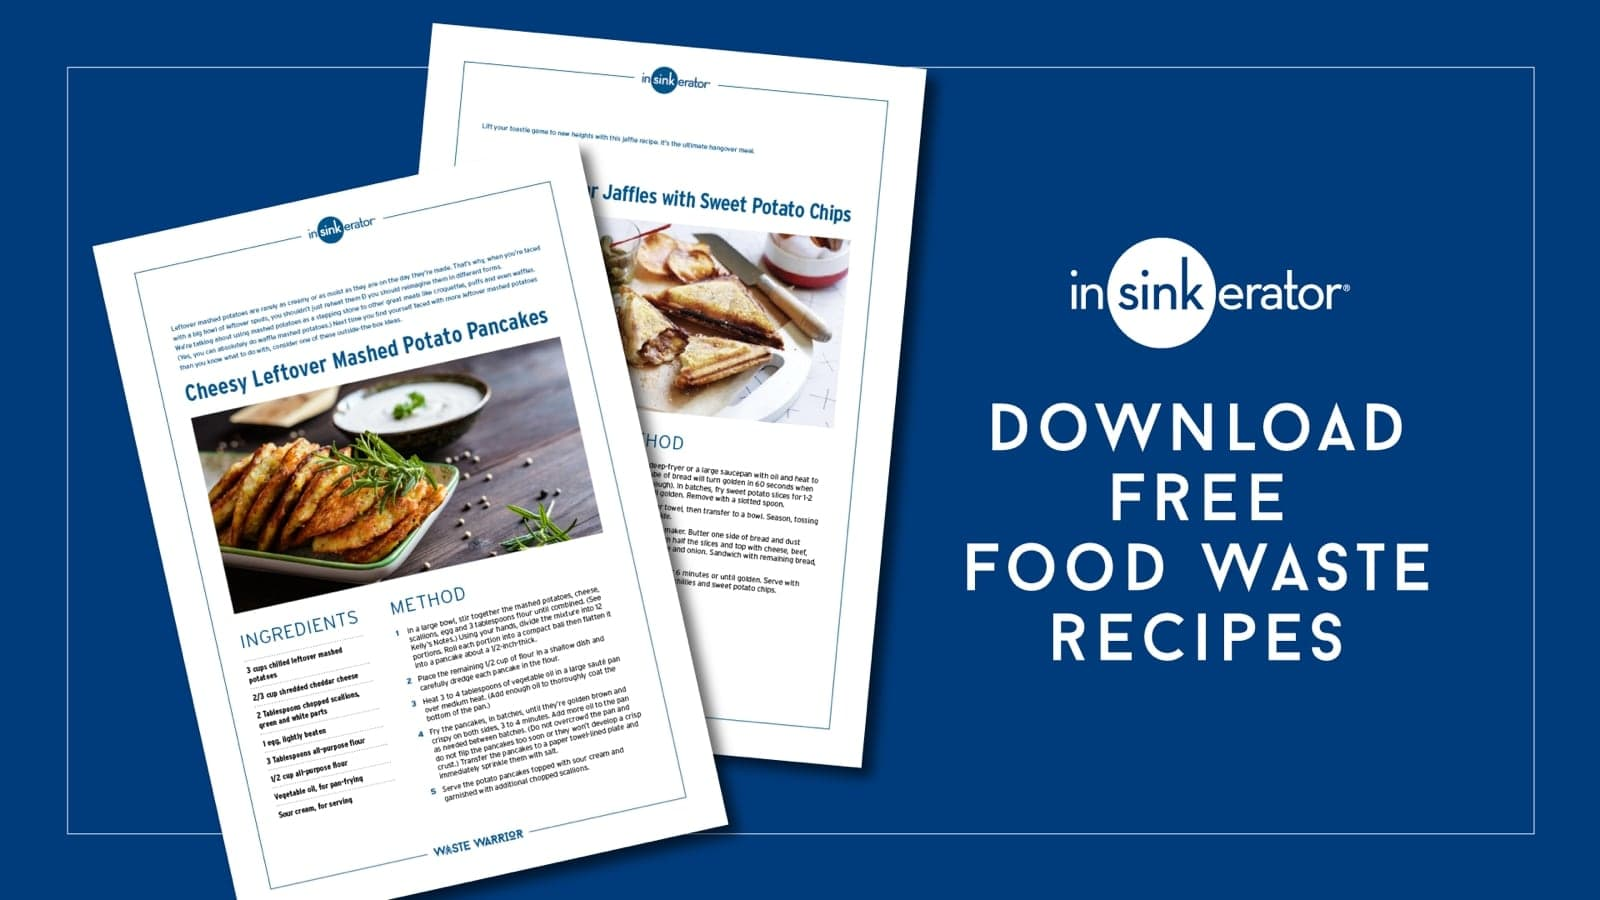 Download free food waste recipes